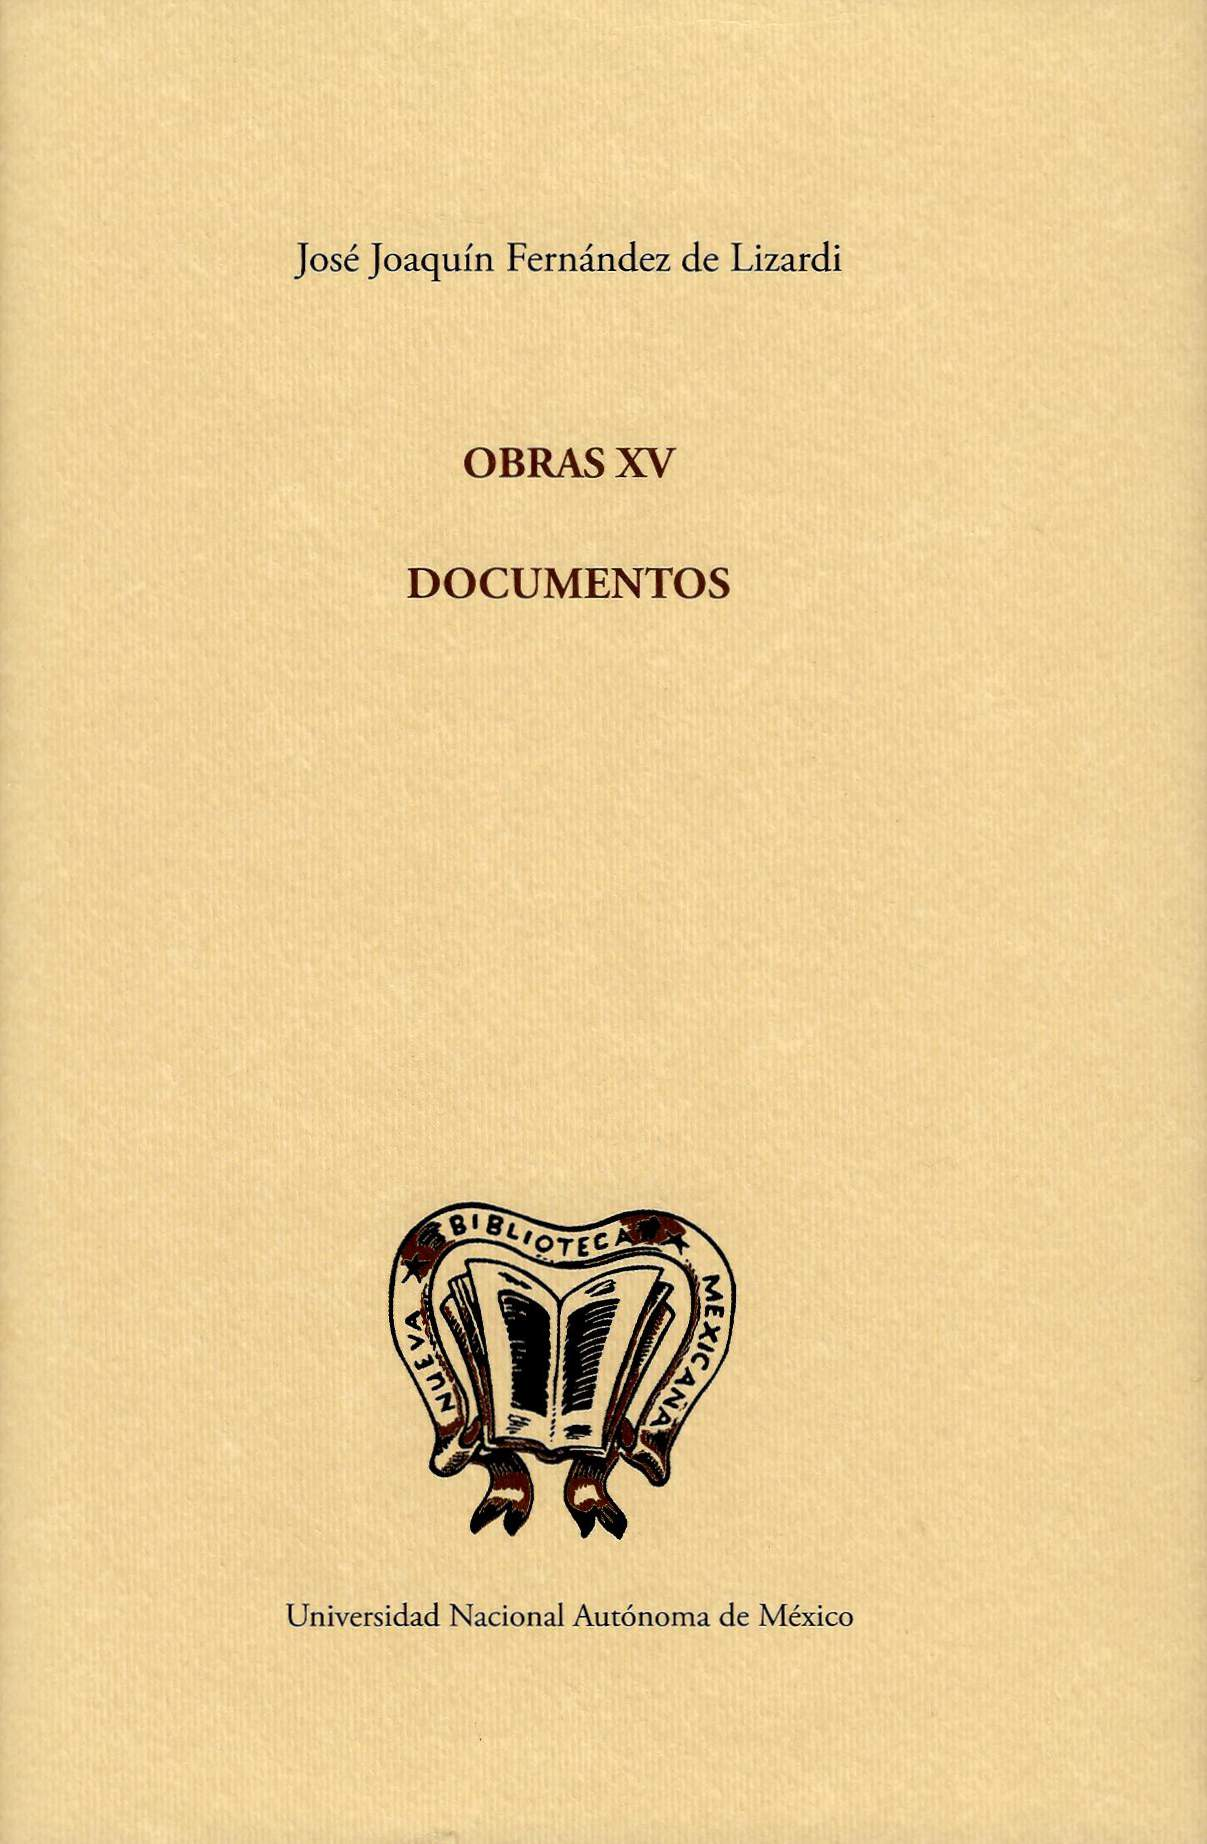 Obras XV: Documentos